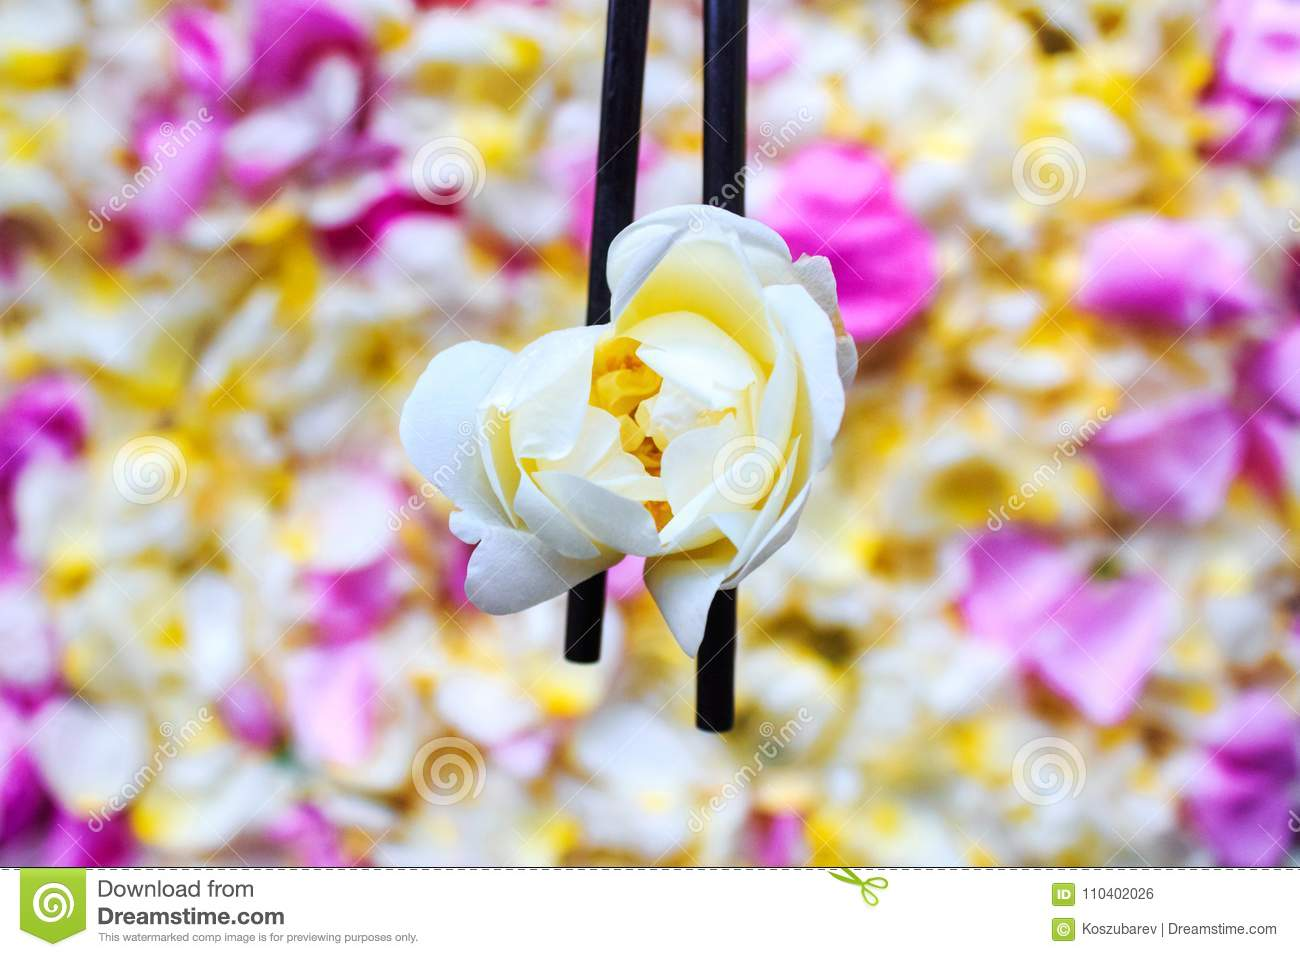 Chinese sticks hold a white jasmine stock photo image of nature chinese sticks hold a jasmine flower against the background of flower petals izmirmasajfo